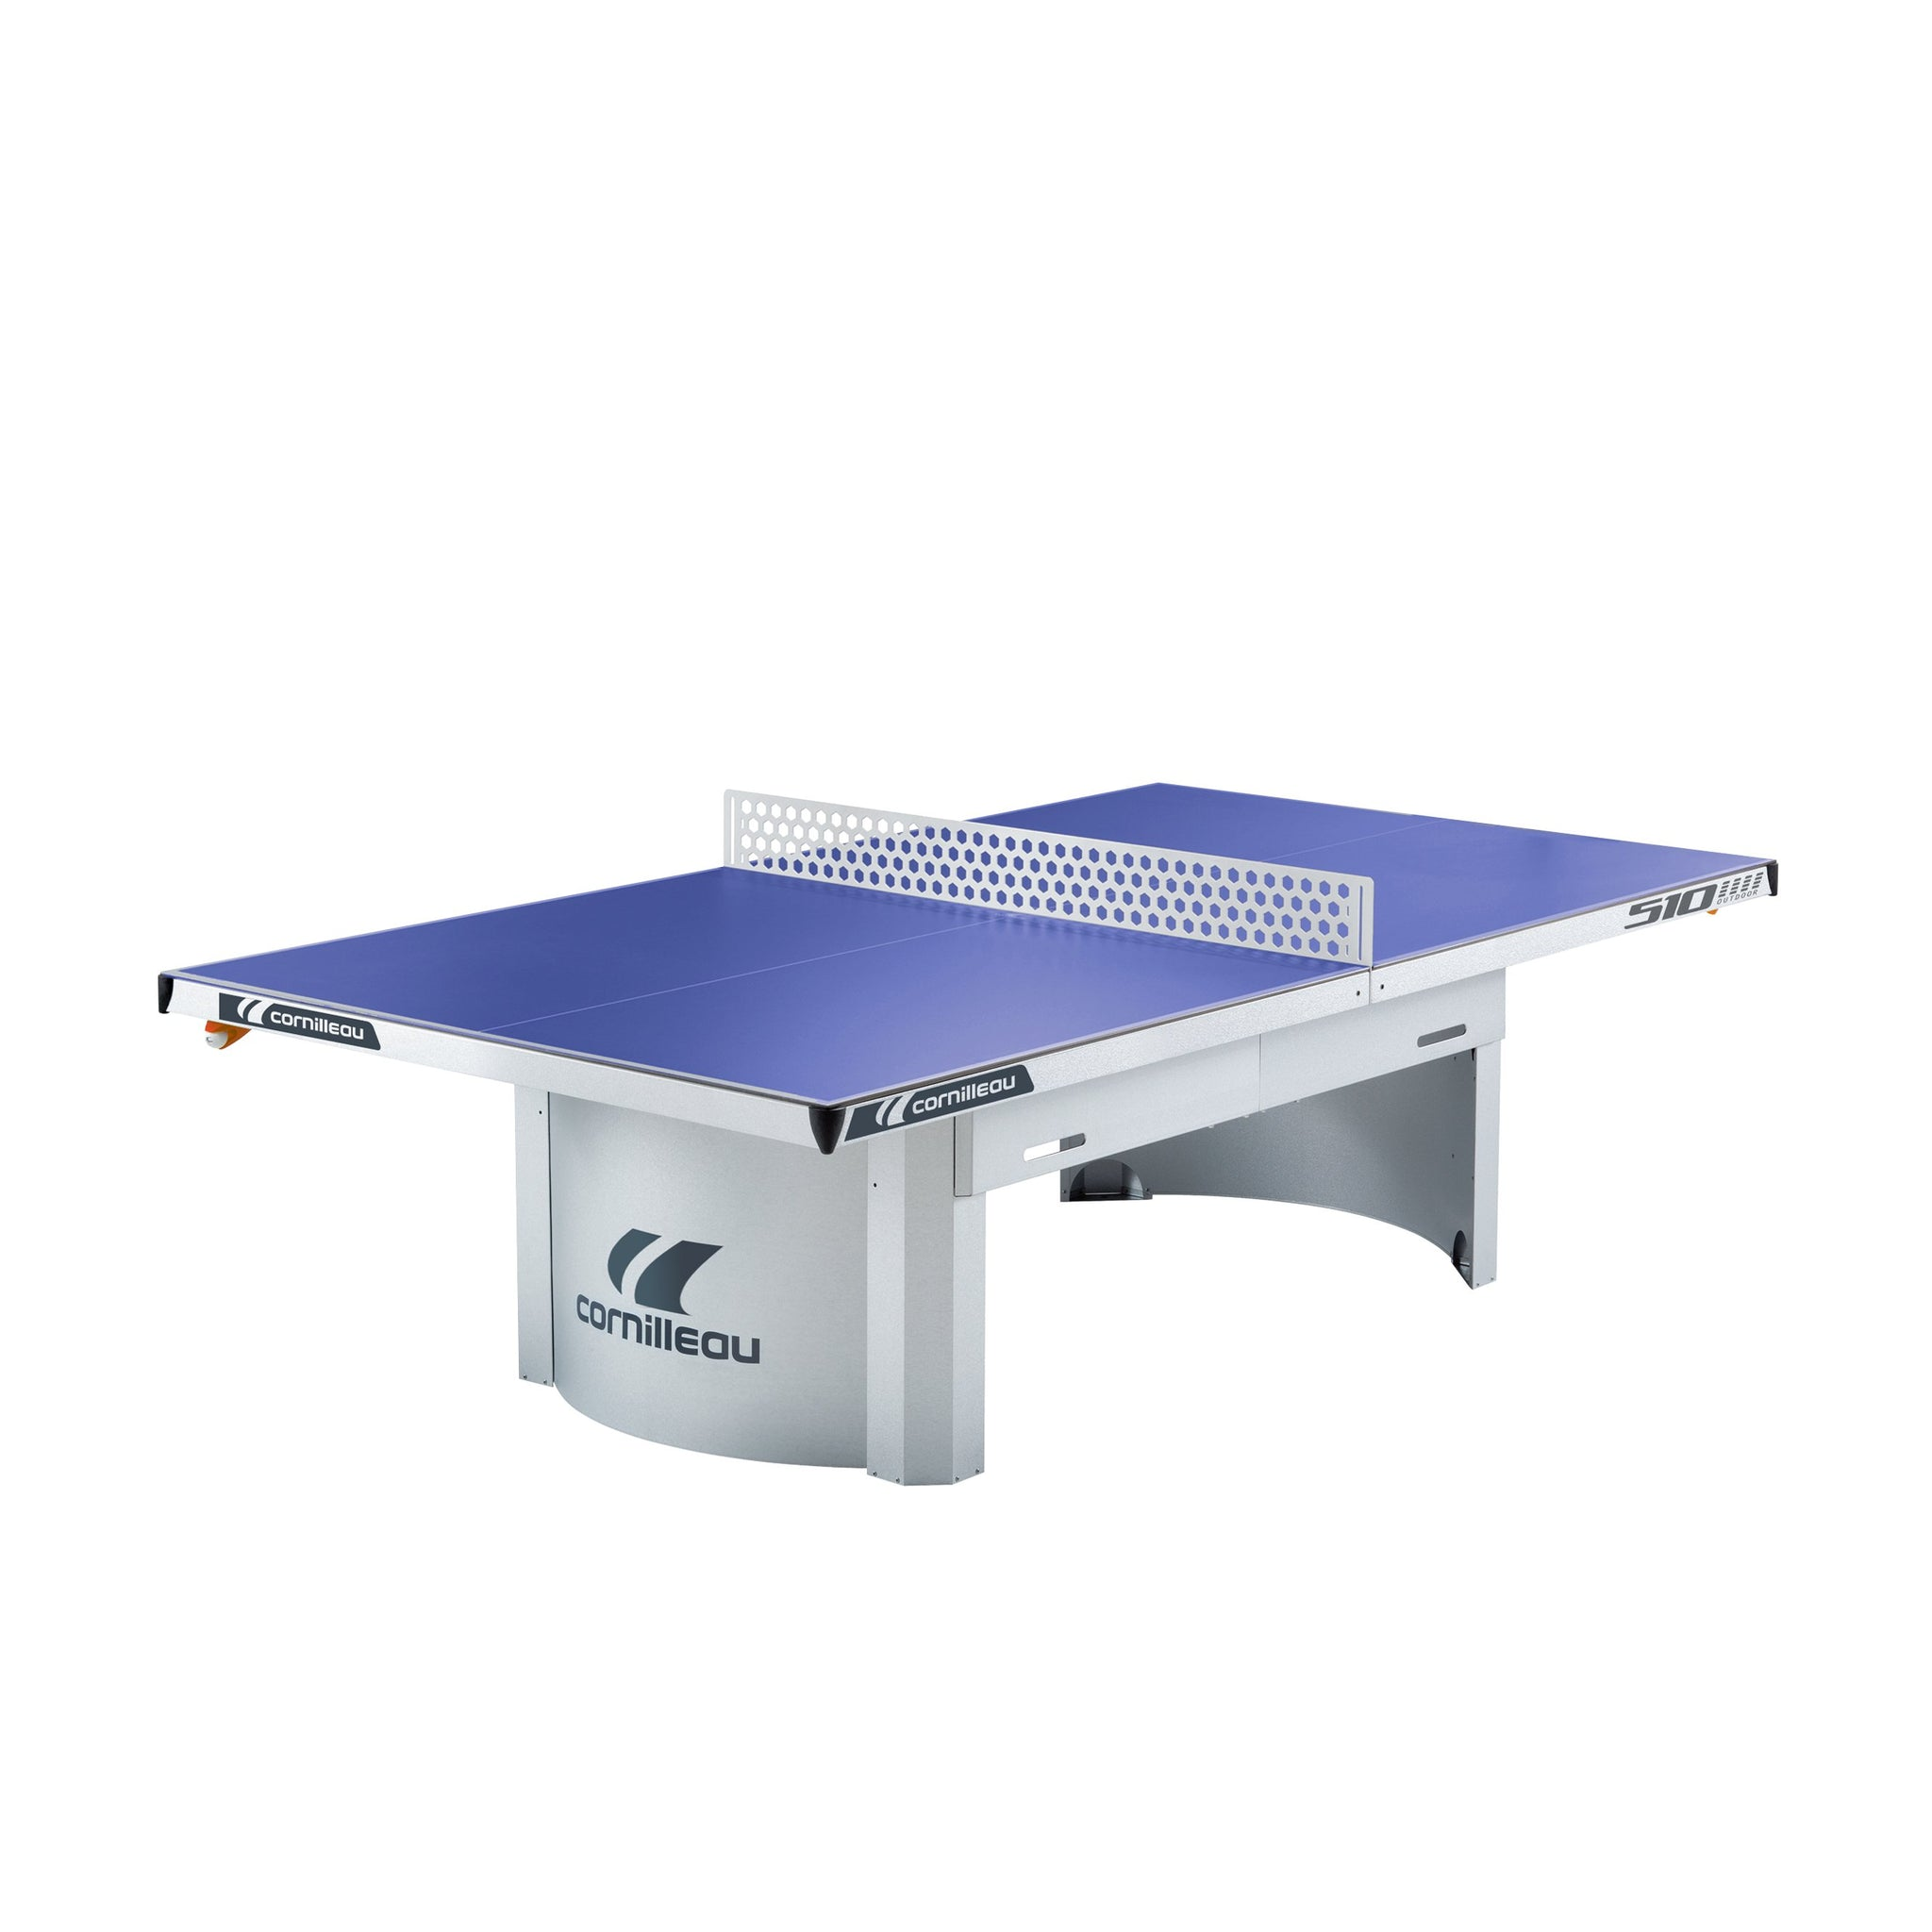 Cornilleau Pro 510m Outdoor Table Tennis Table in Blue